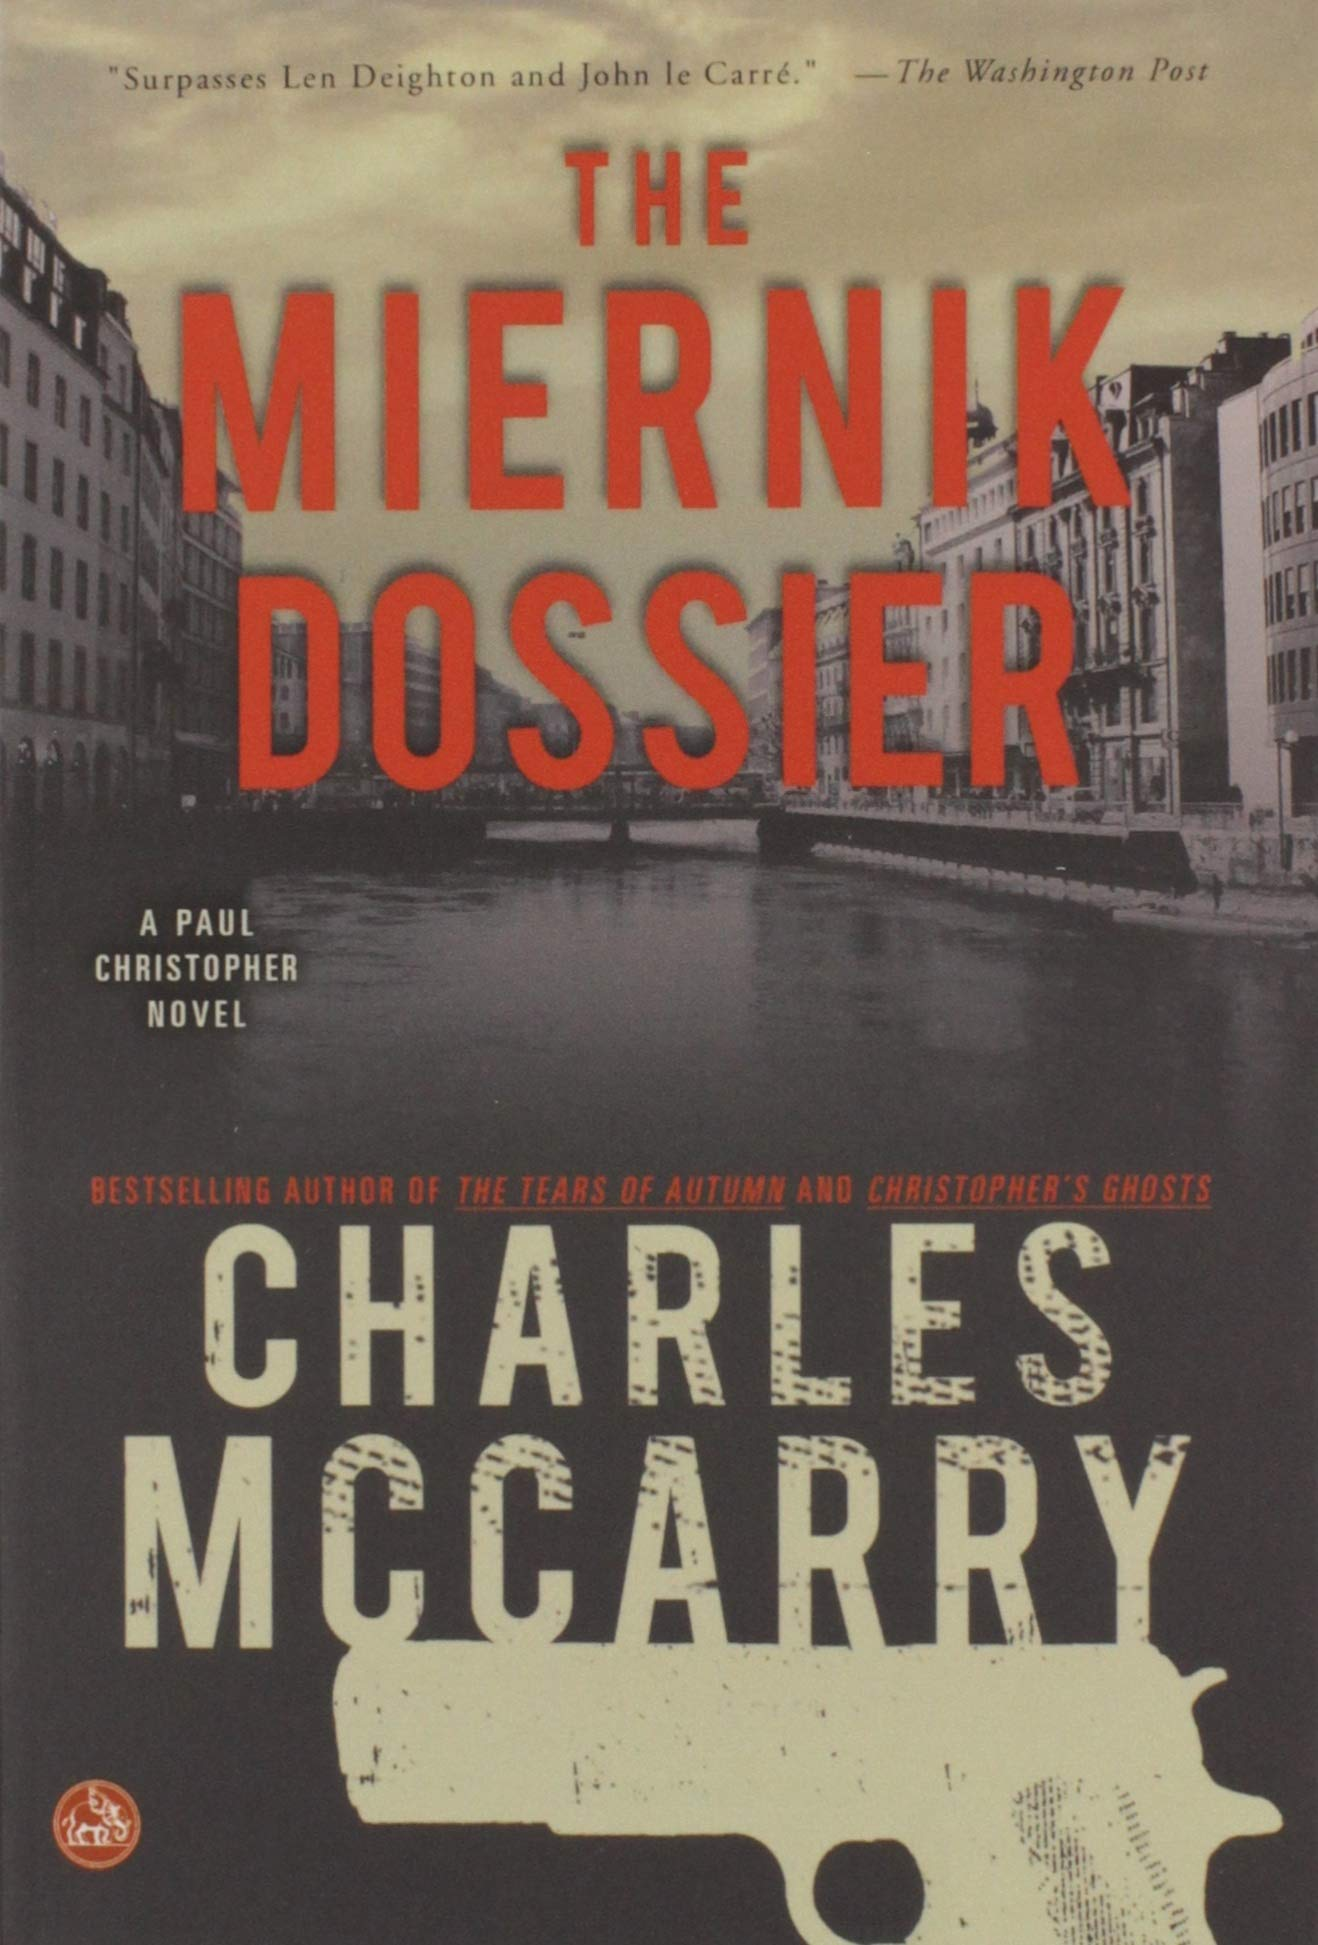 : Miernik Dossier (9781585679423): Charles McCarry